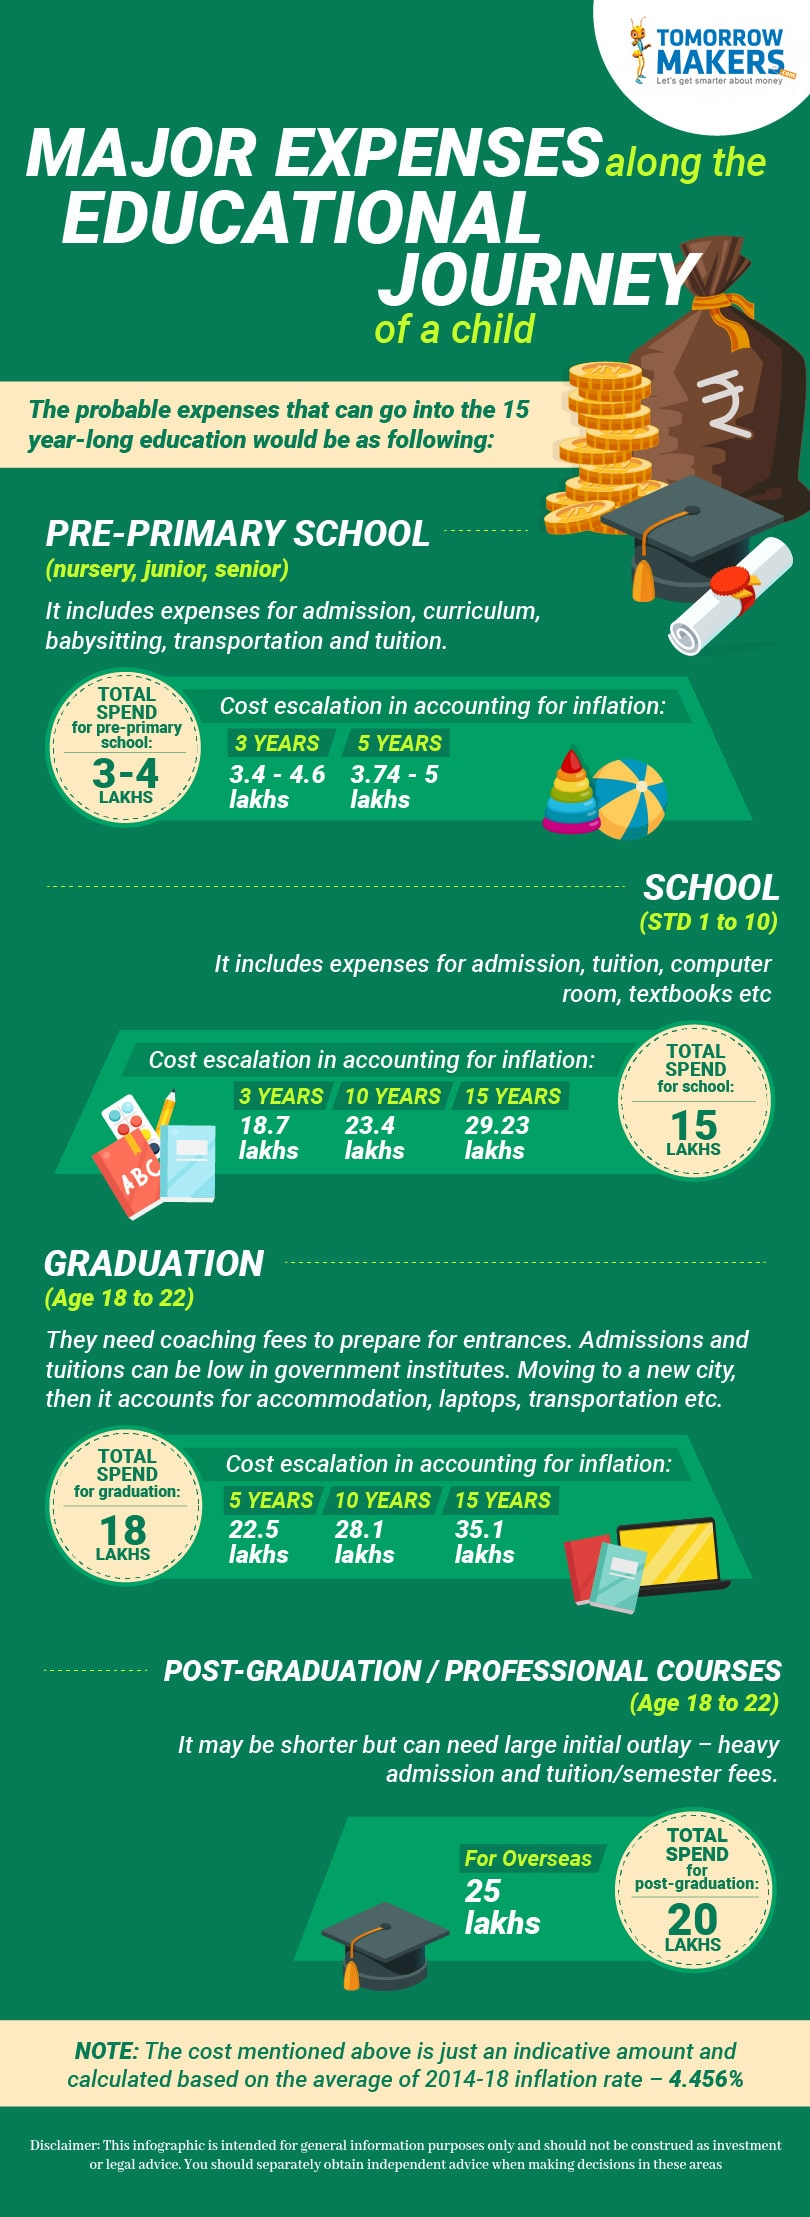 Major expenses along the educational journey of a child